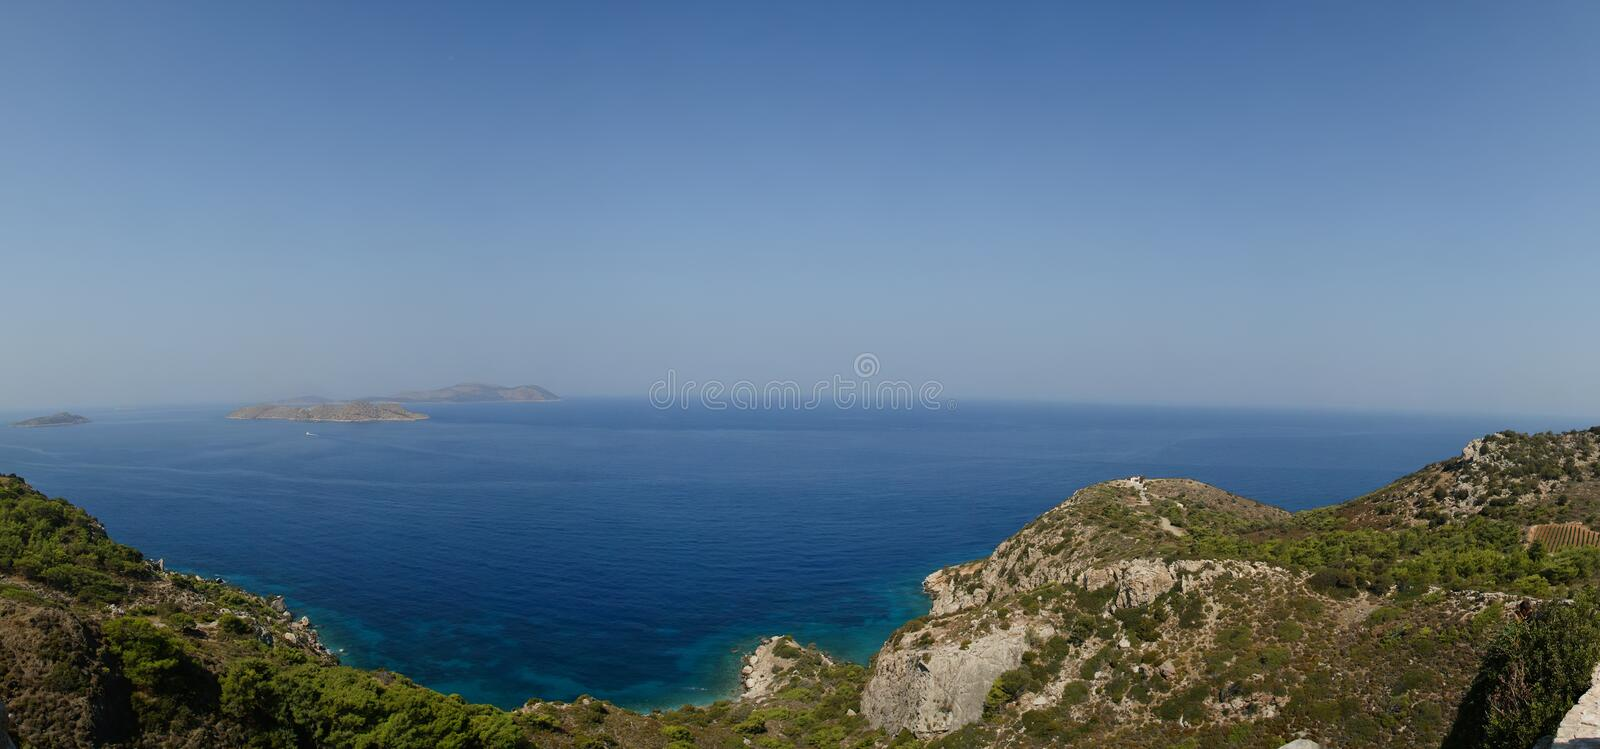 Seascape. Dodecanese Islands in the Aegean Sea, Greece.  royalty free stock photography